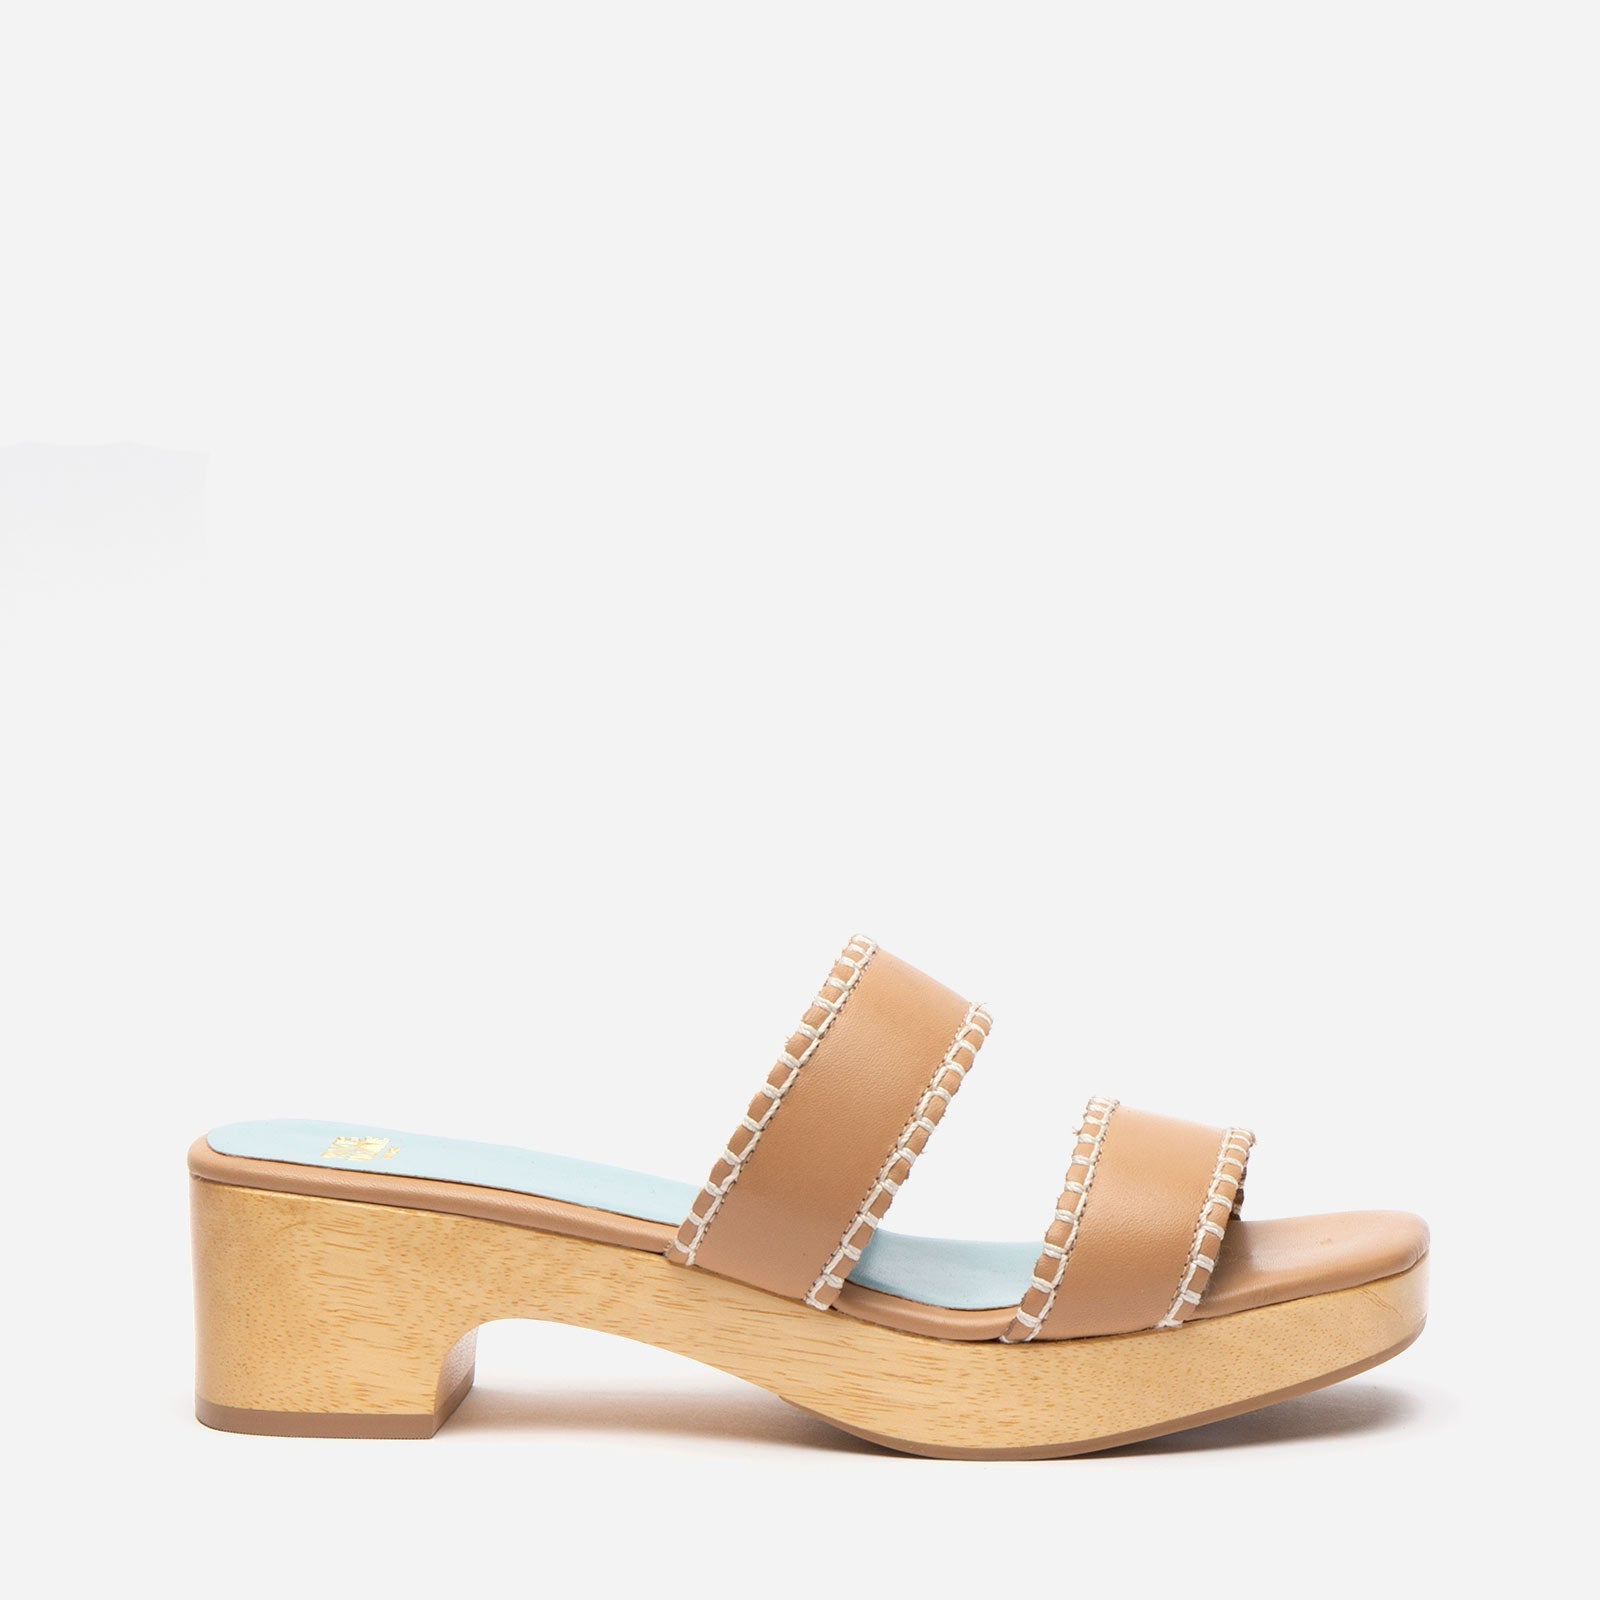 Wooden Slide Sandal Vachetta Leather Natural